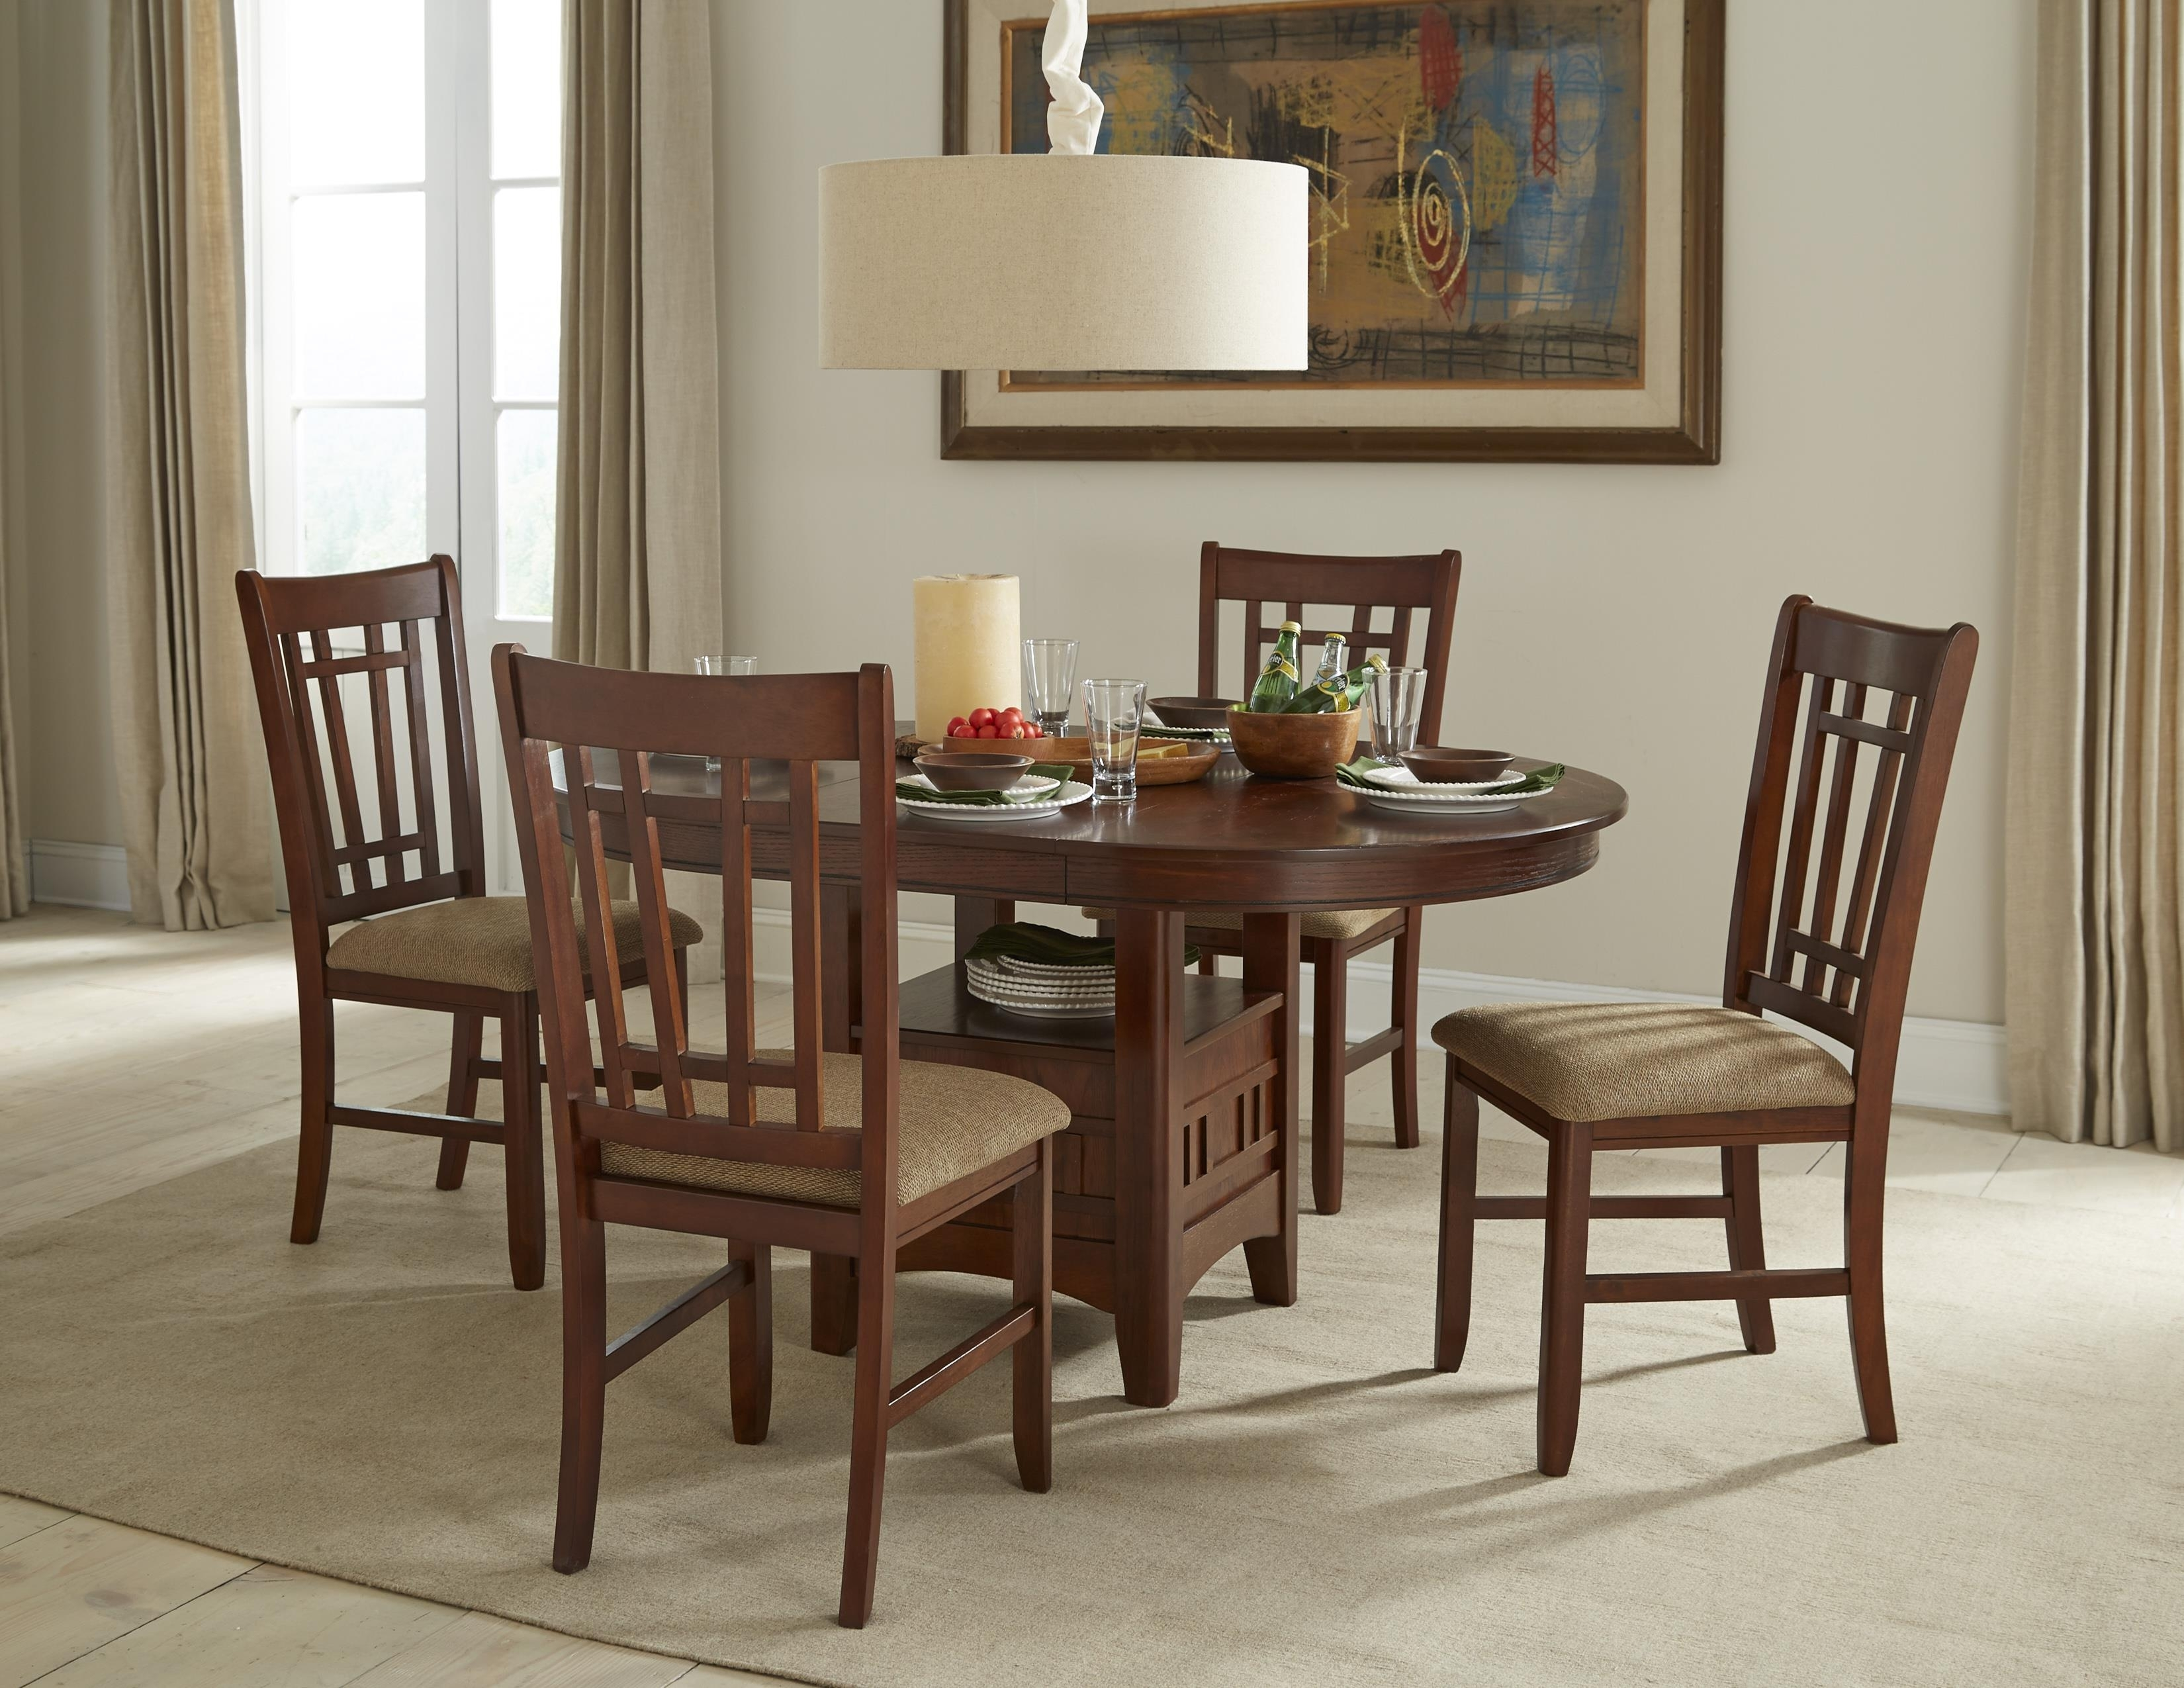 Intercon Mission Casuals 5 Piece Gathering Set | Wayside Furniture Regarding Most Recent Market 5 Piece Counter Sets (Image 16 of 20)